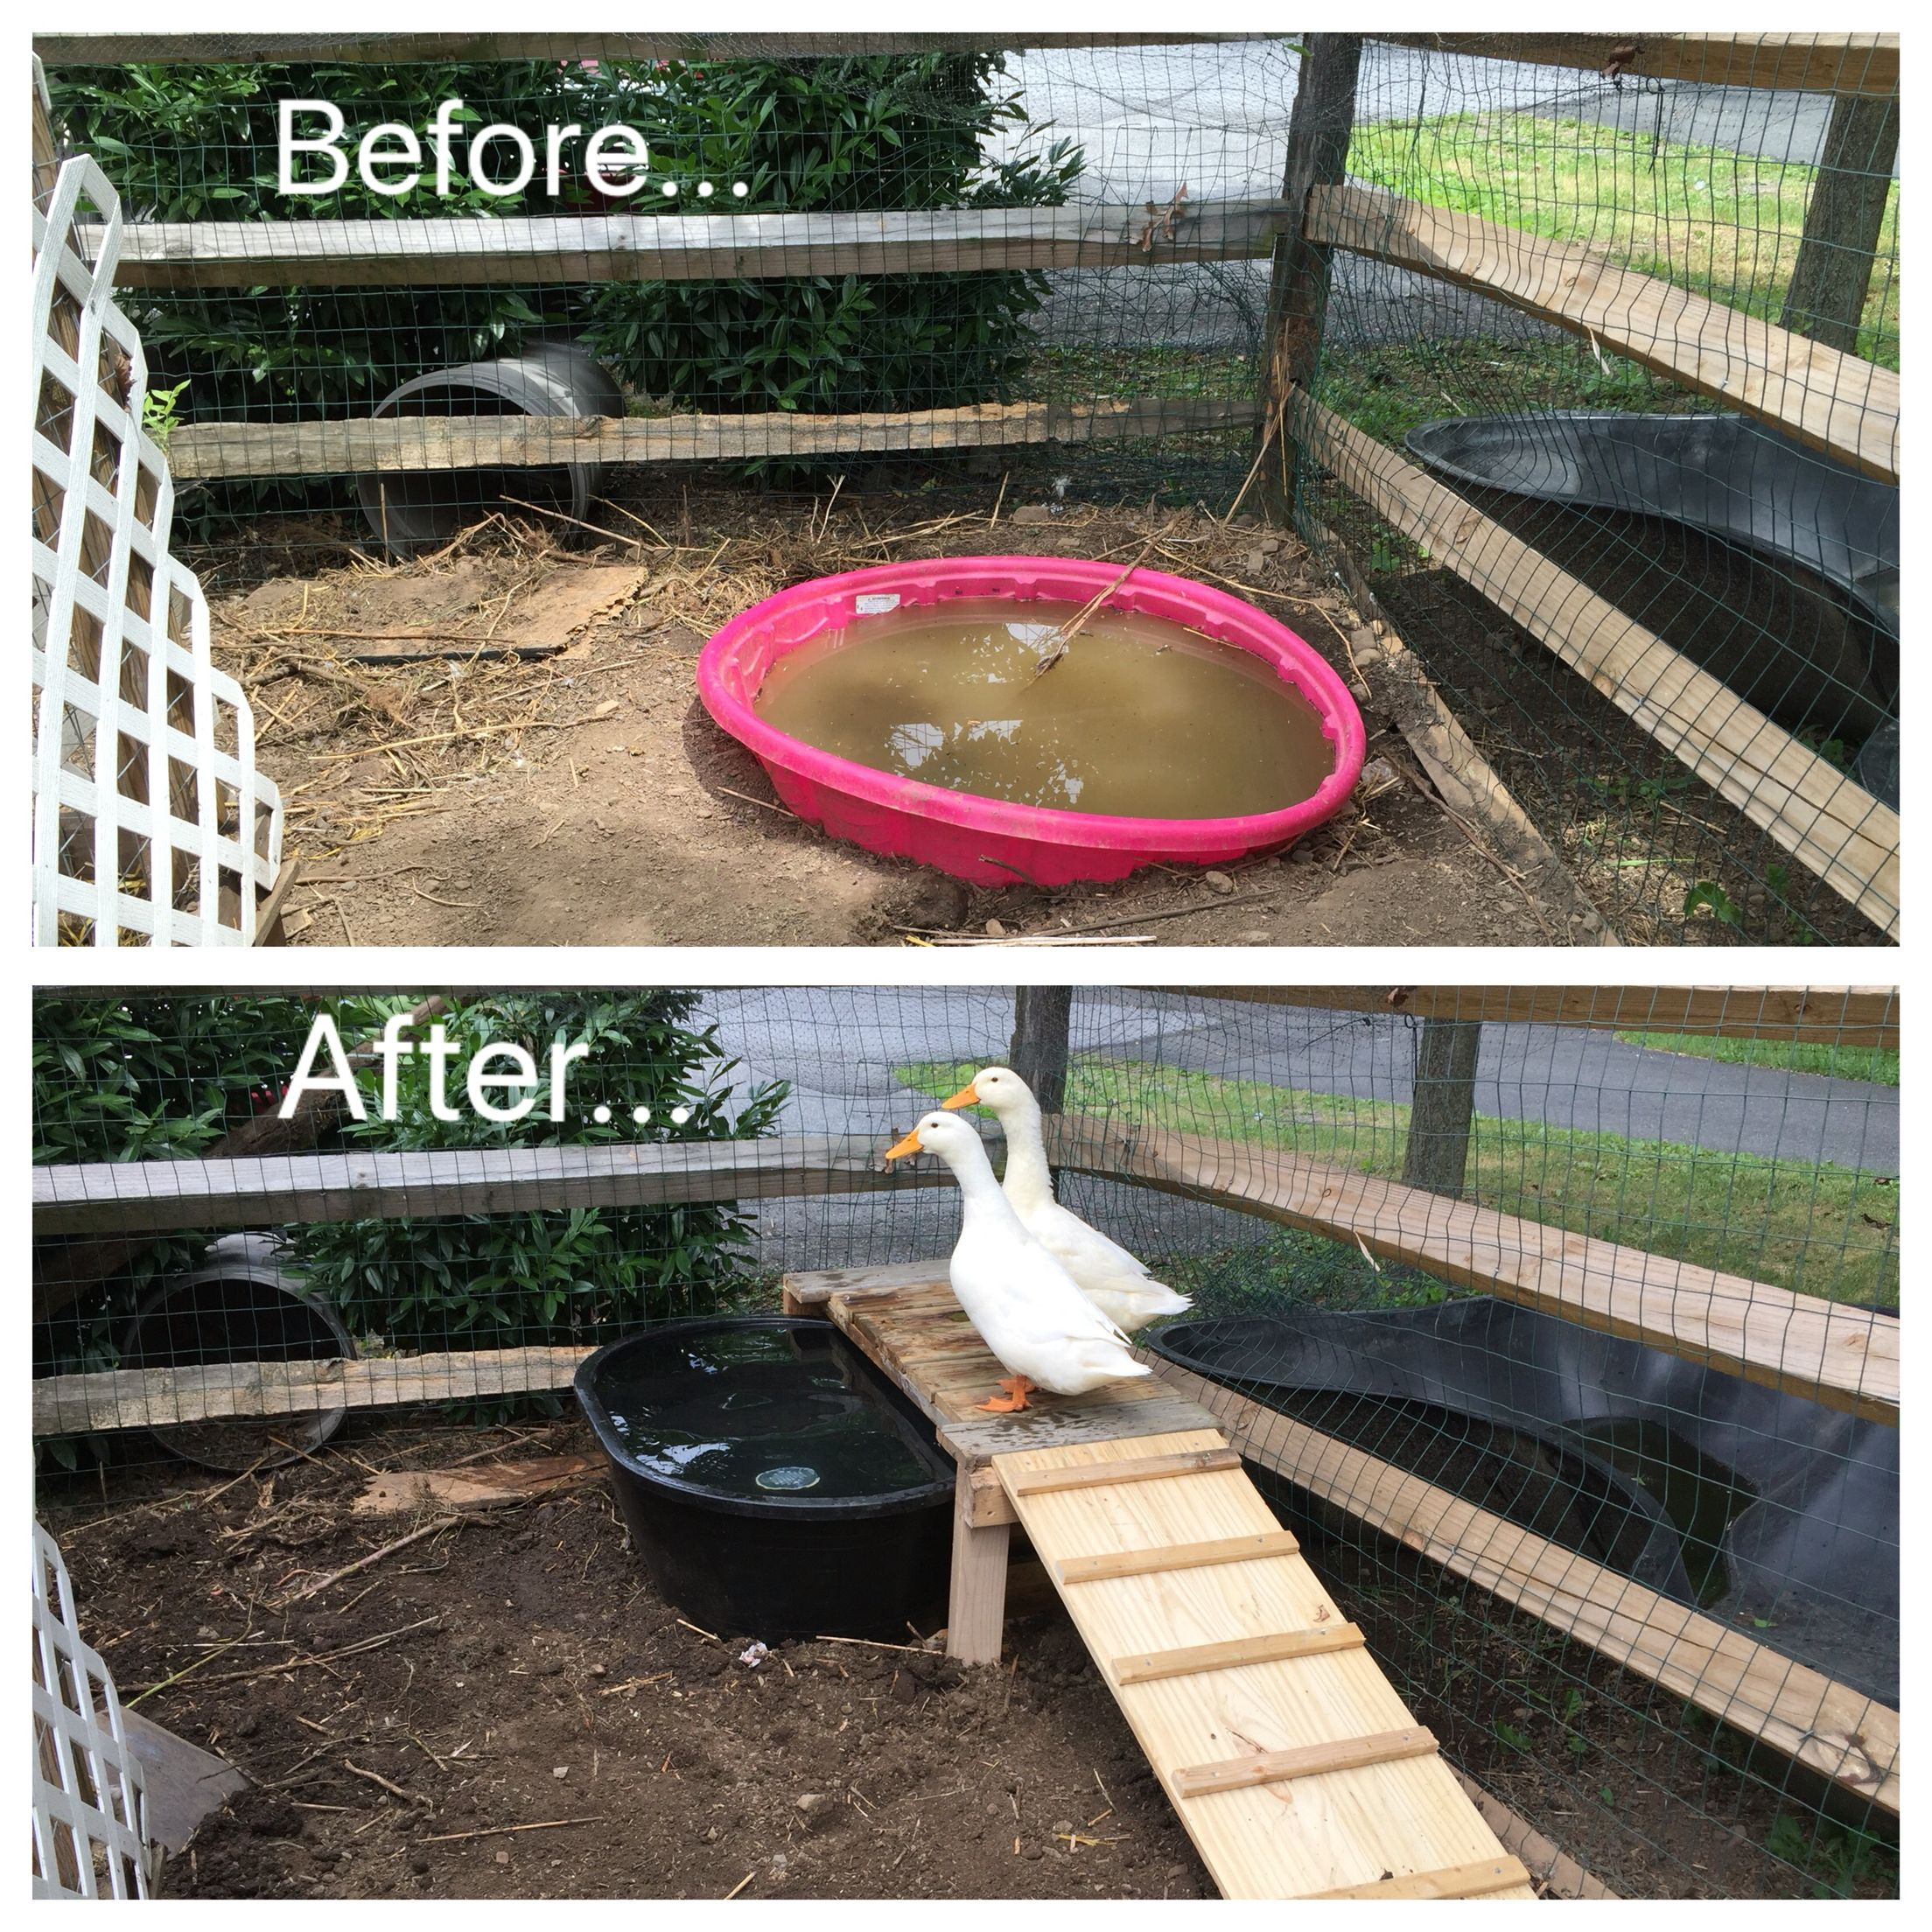 Diy duck pond with ramp and platform made from pallets for Pond made from pallets